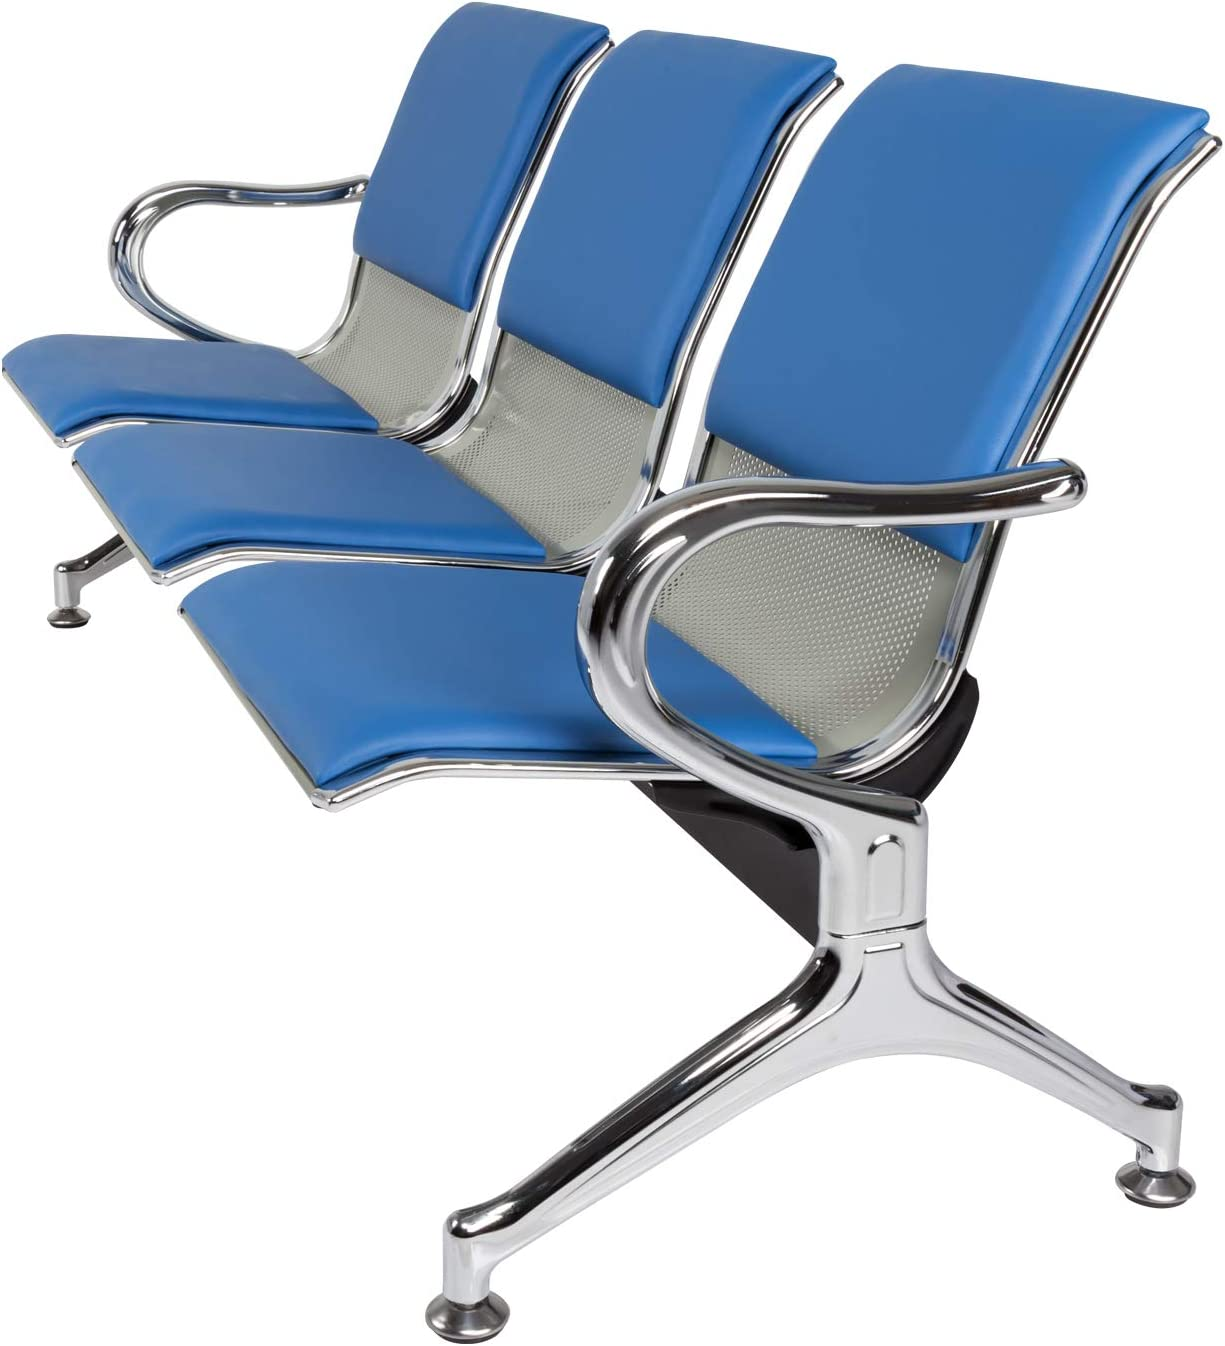 Lobby Bench Seating Waiting Room Chairs with Arms 3-Seat PU Leather Reception Area Airport Bench